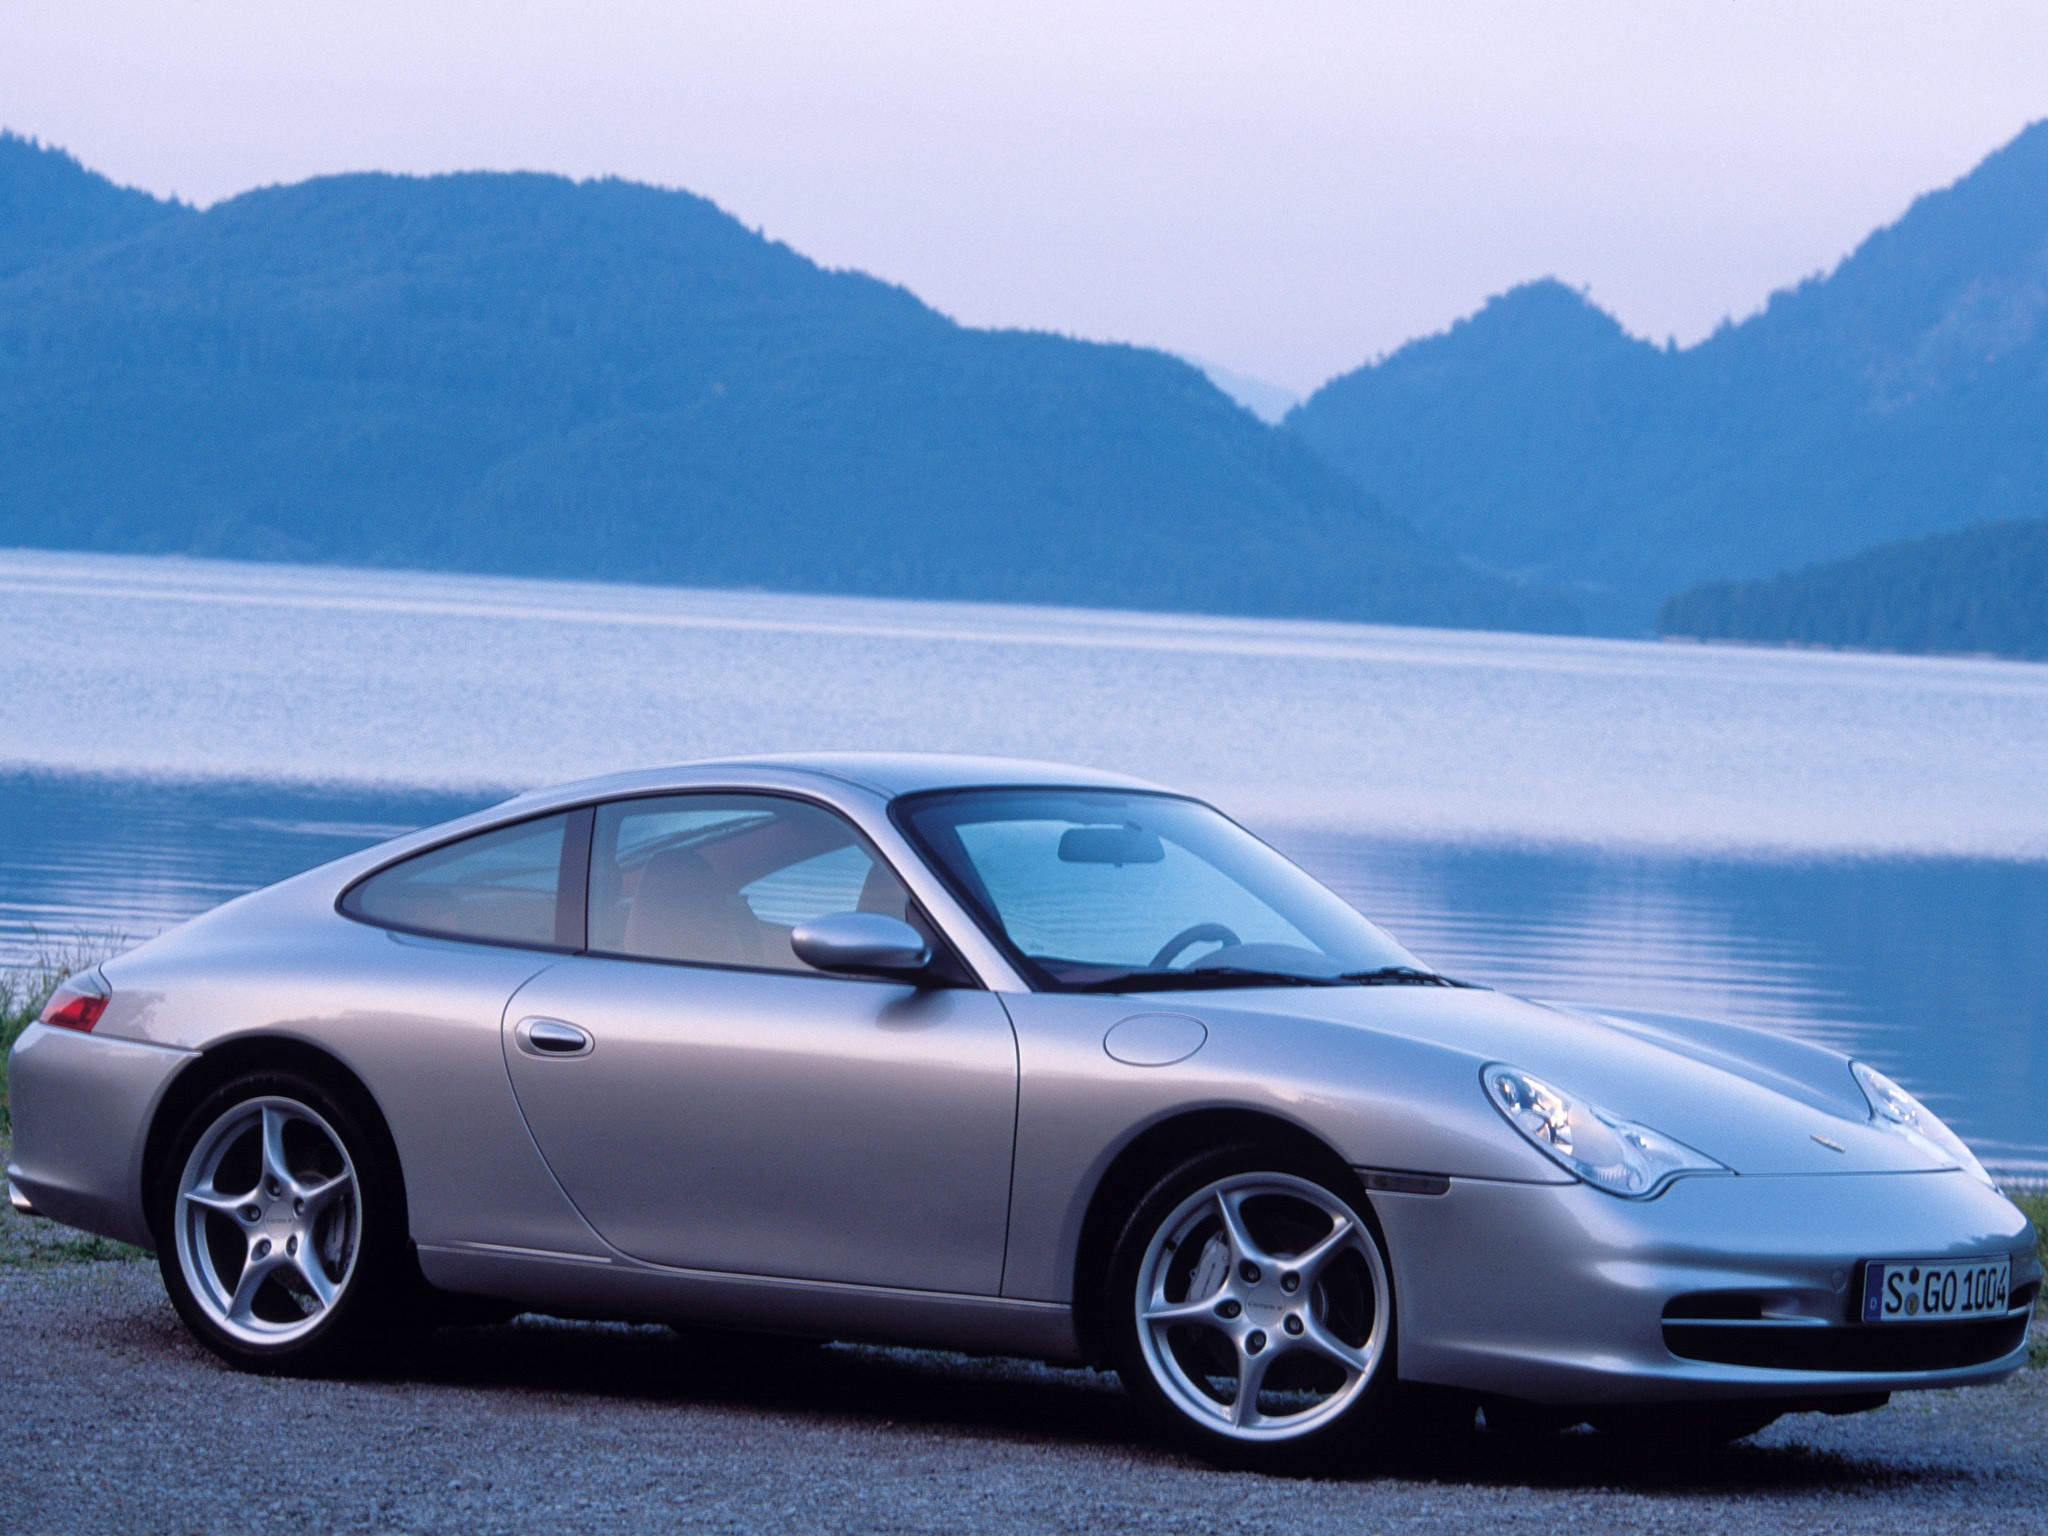 Old Car Wallpaper Download Porsche 911 Carrera 4 996 Specs Amp Photos 2001 2002